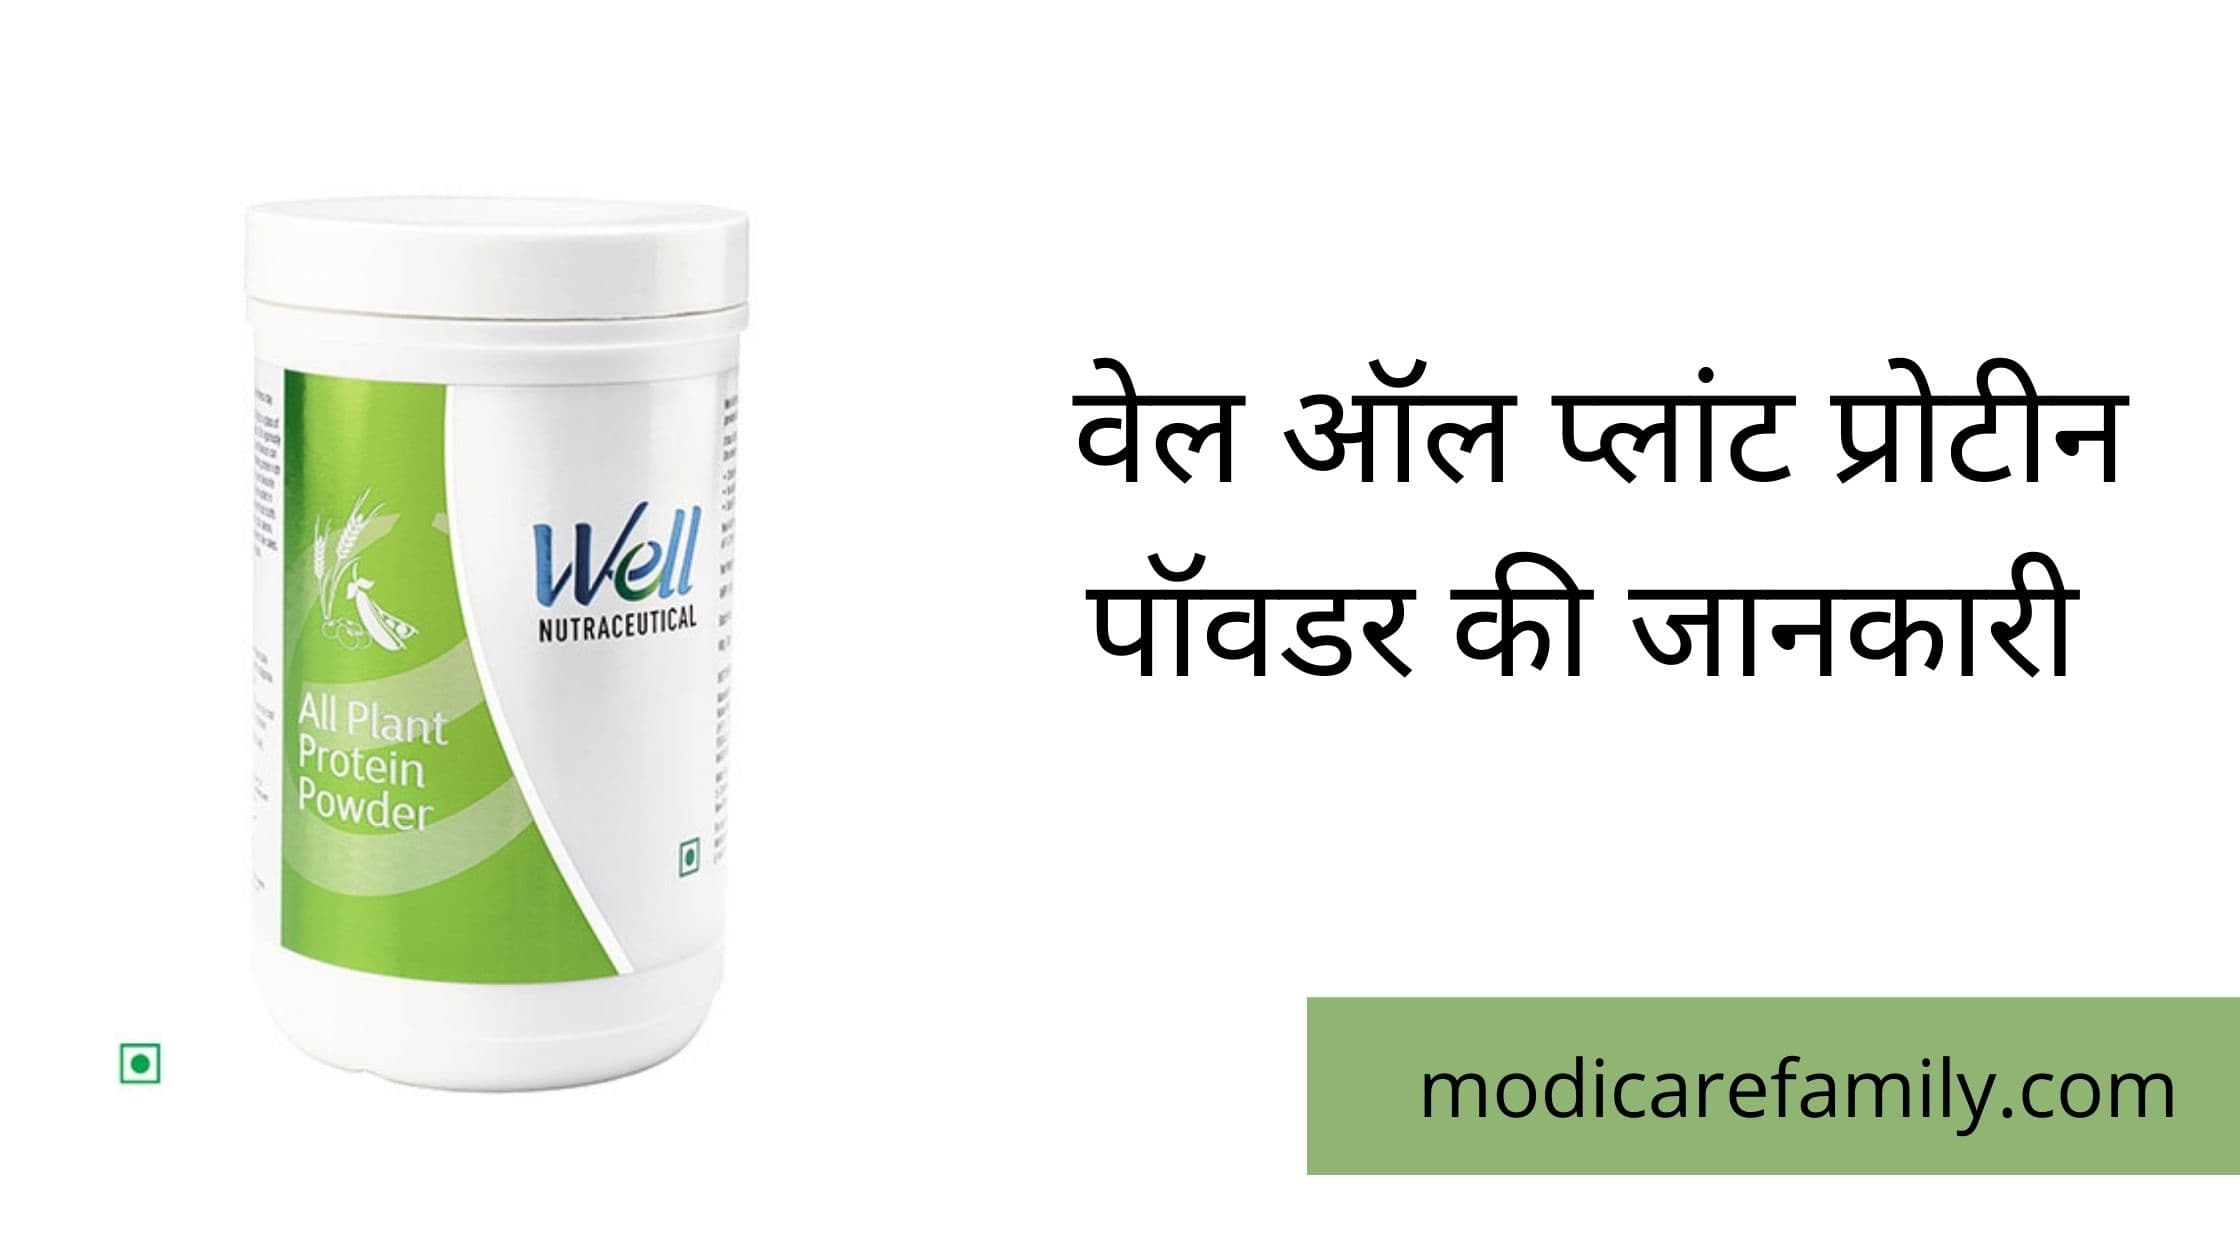 Modicare Well All Plant Protein Powder 500gm benefits